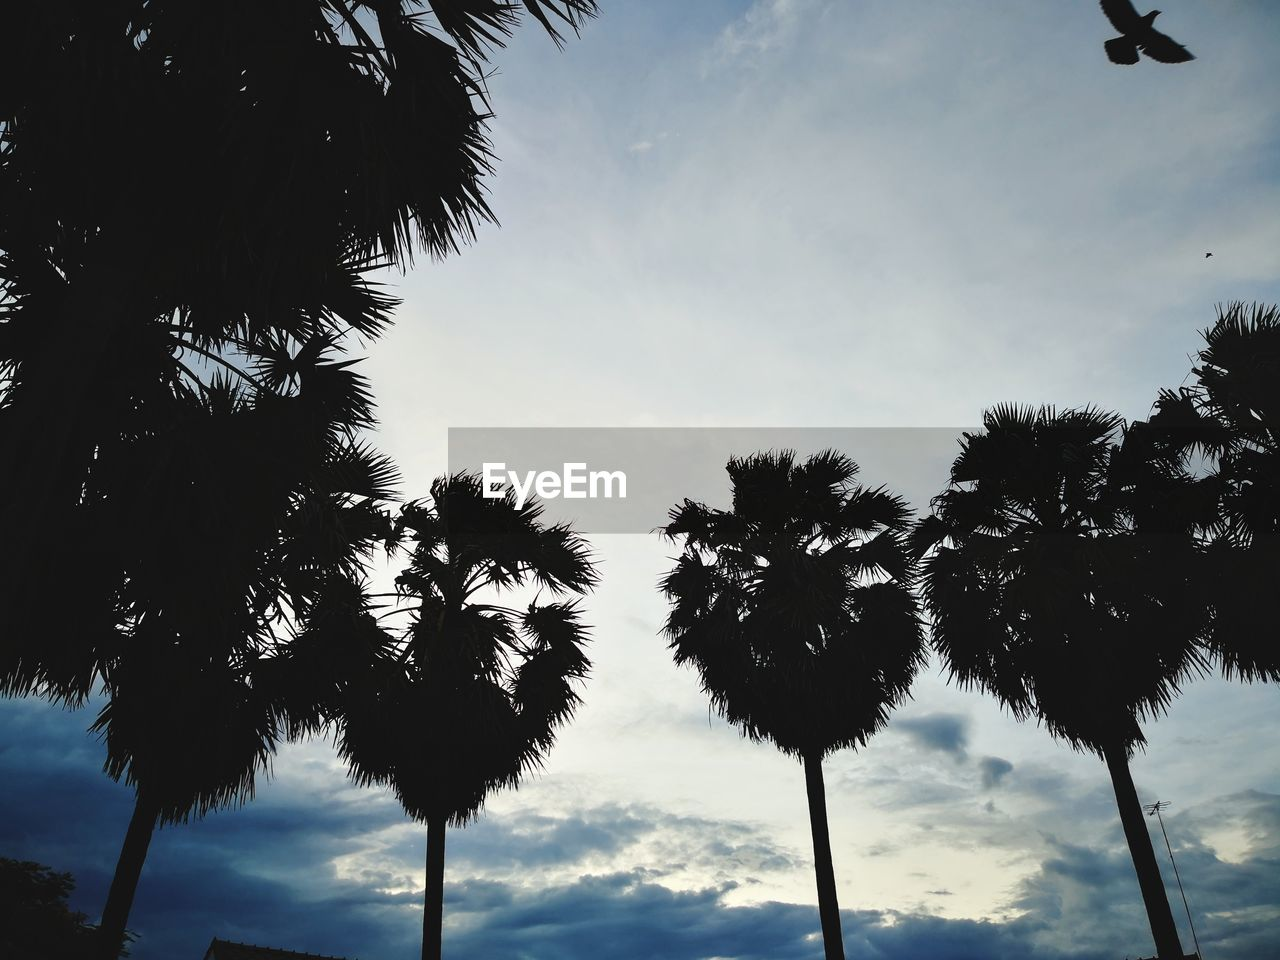 tree, sky, palm tree, low angle view, tropical climate, plant, cloud - sky, silhouette, growth, nature, beauty in nature, no people, day, tranquility, tree trunk, outdoors, trunk, tranquil scene, tall - high, scenics - nature, coconut palm tree, tropical tree, palm leaf